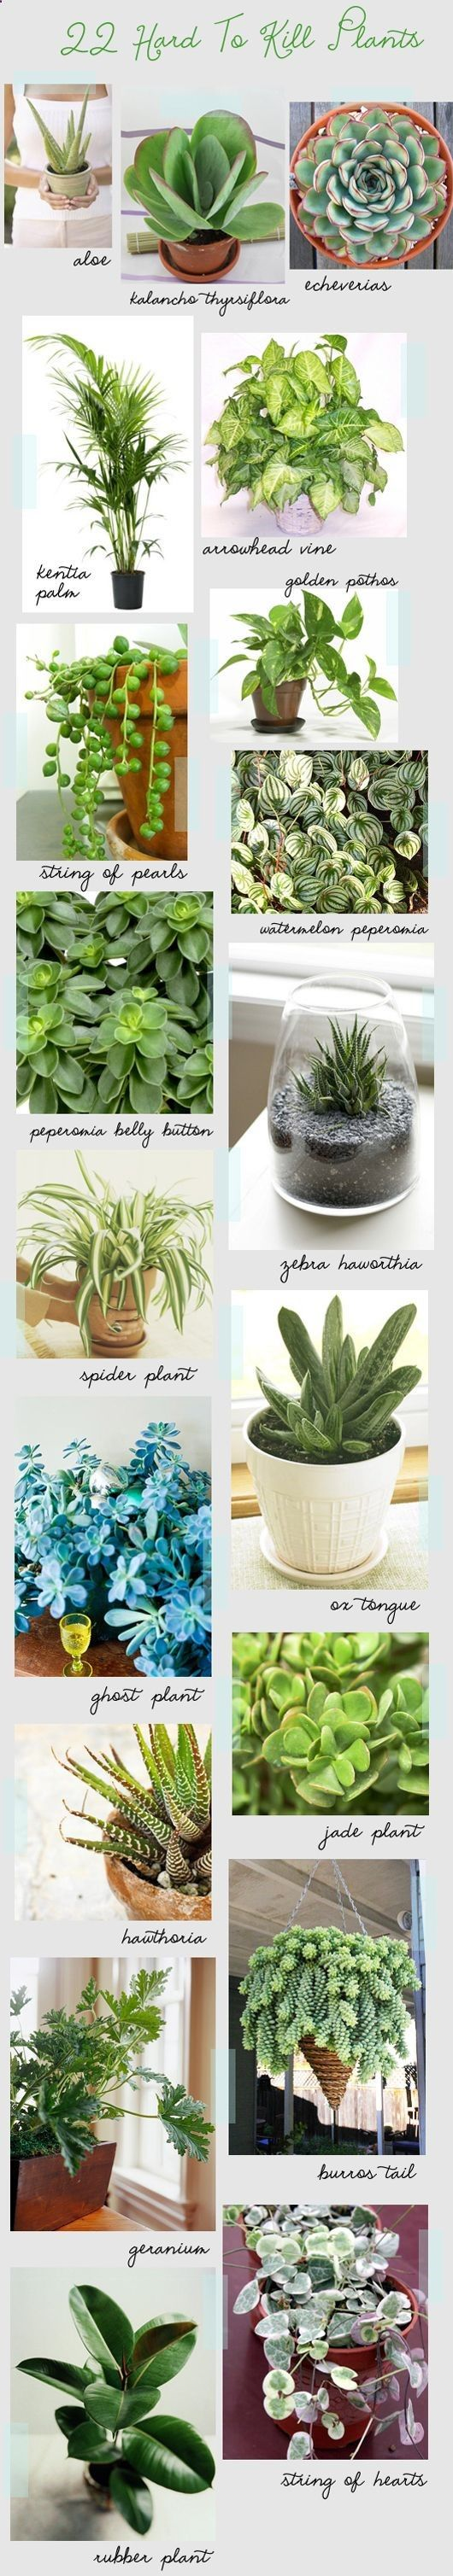 how to kill slugs in house plants